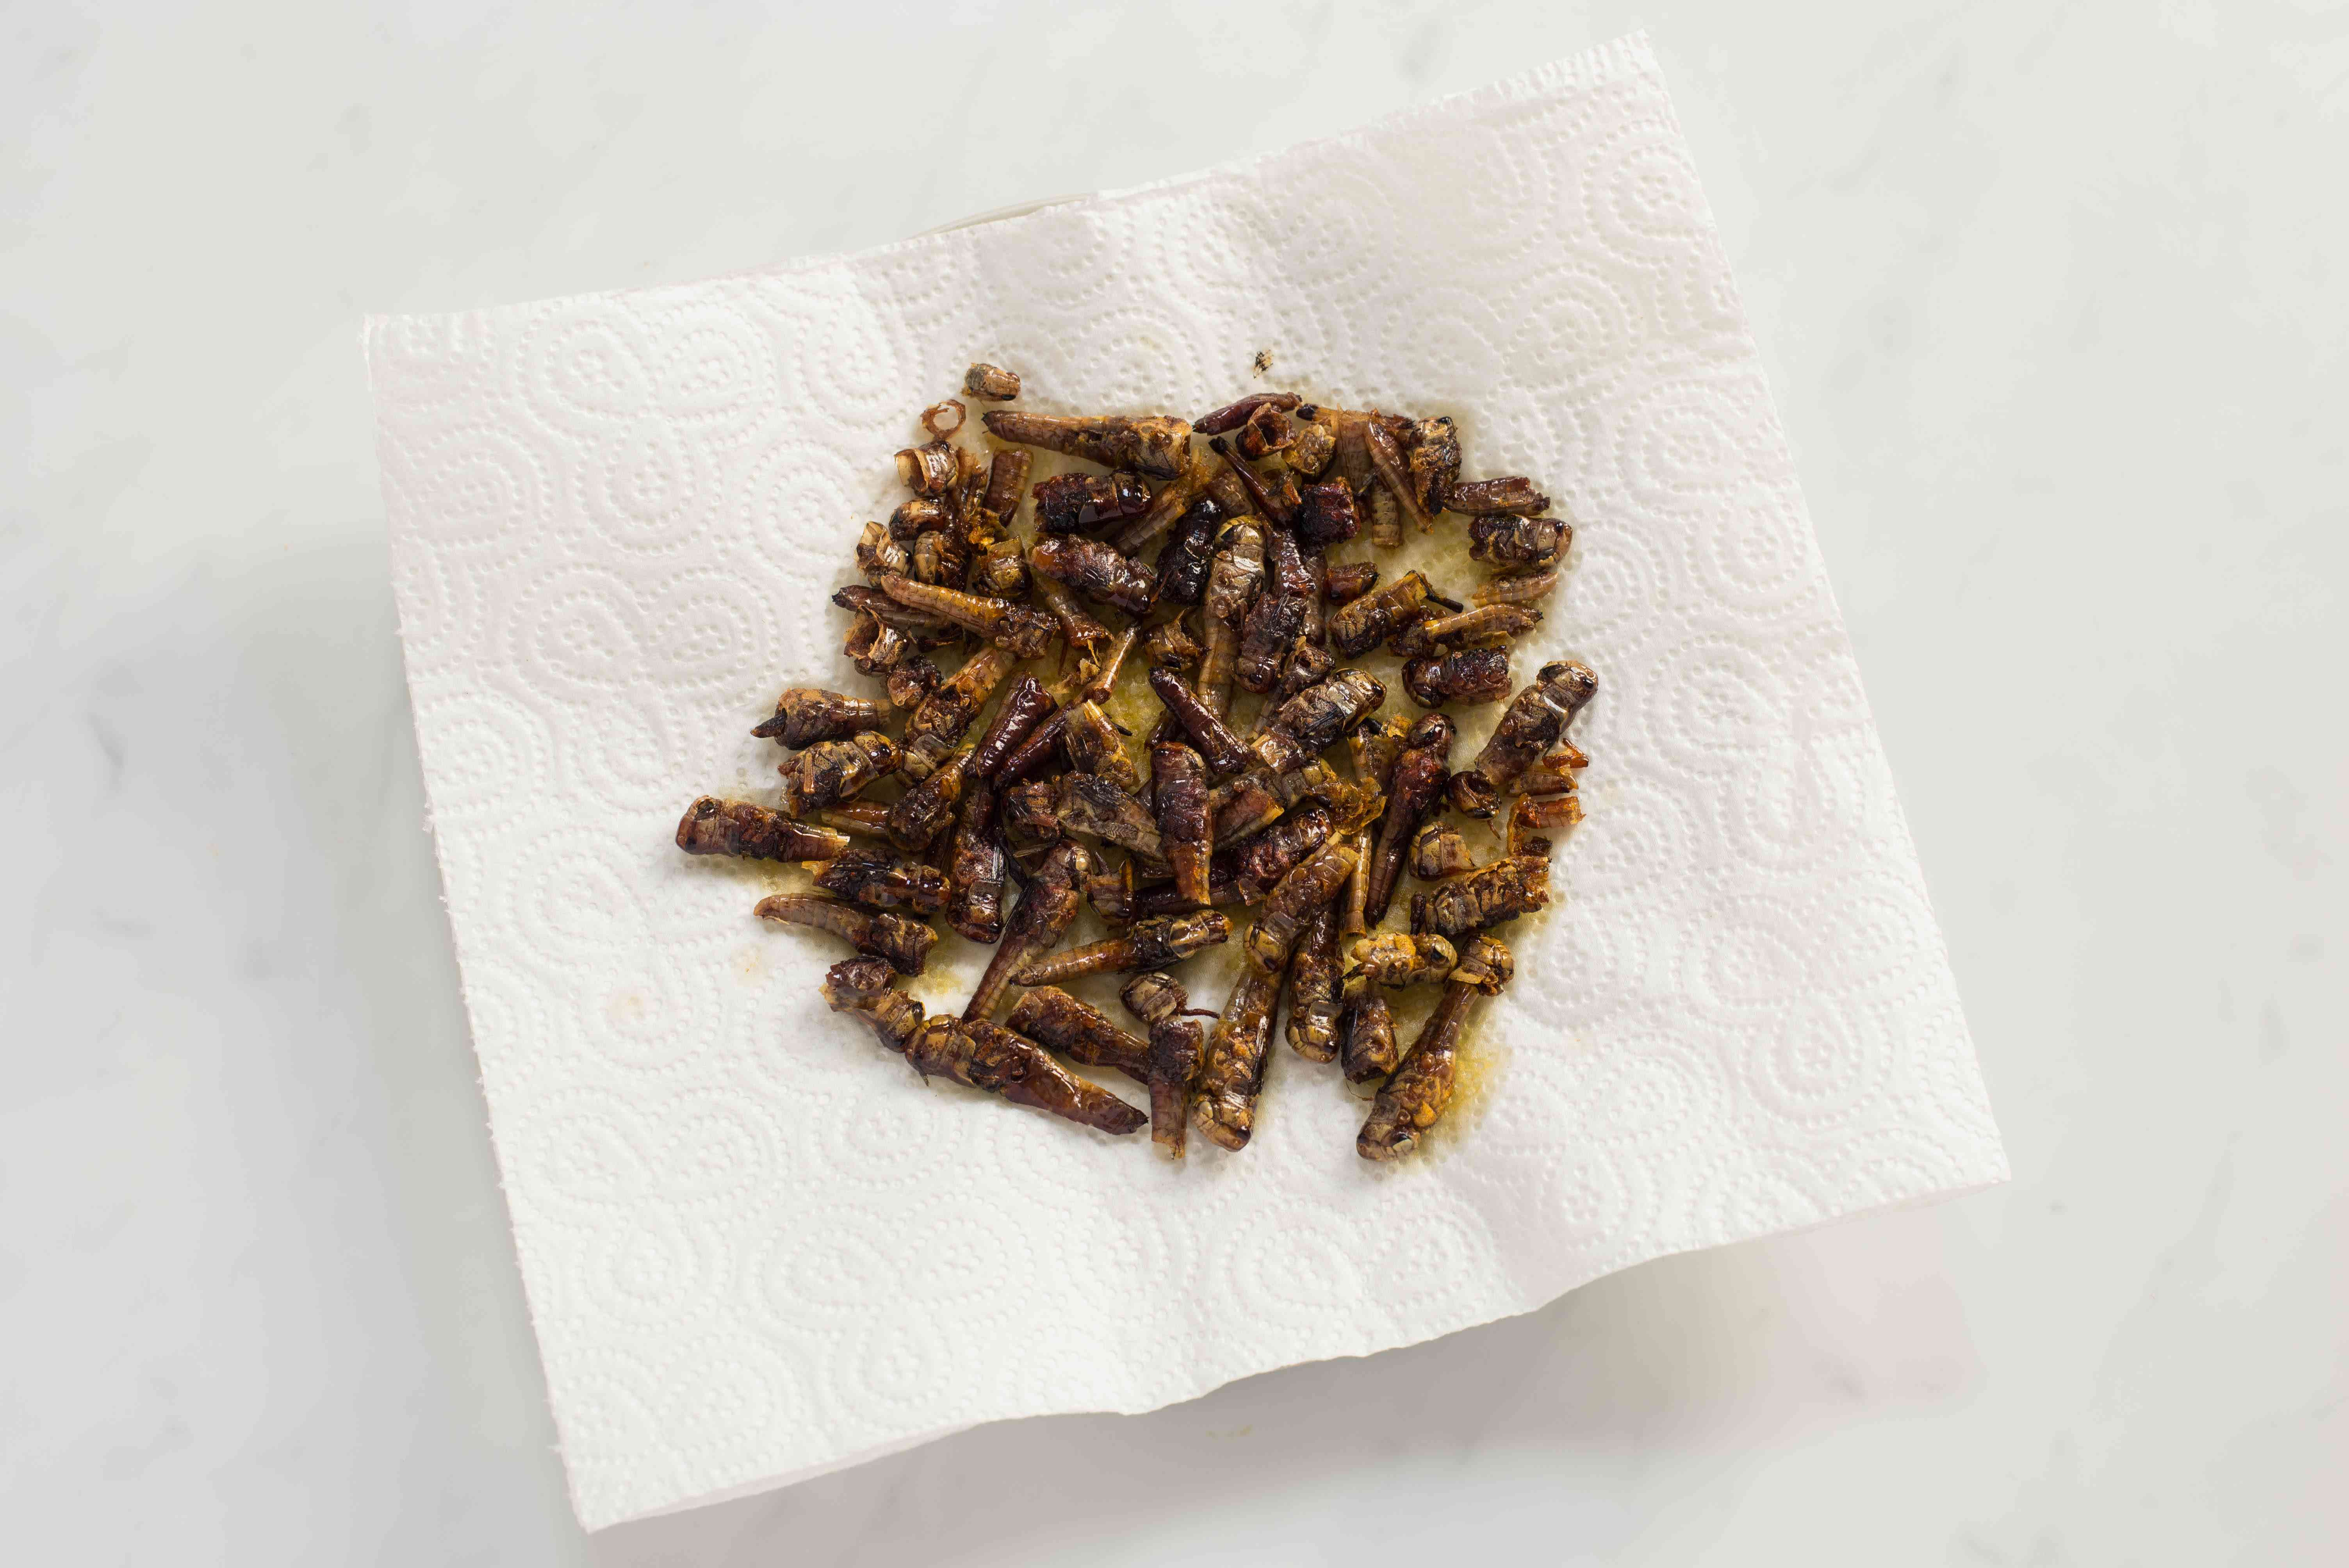 Chapulines draining on paper towels